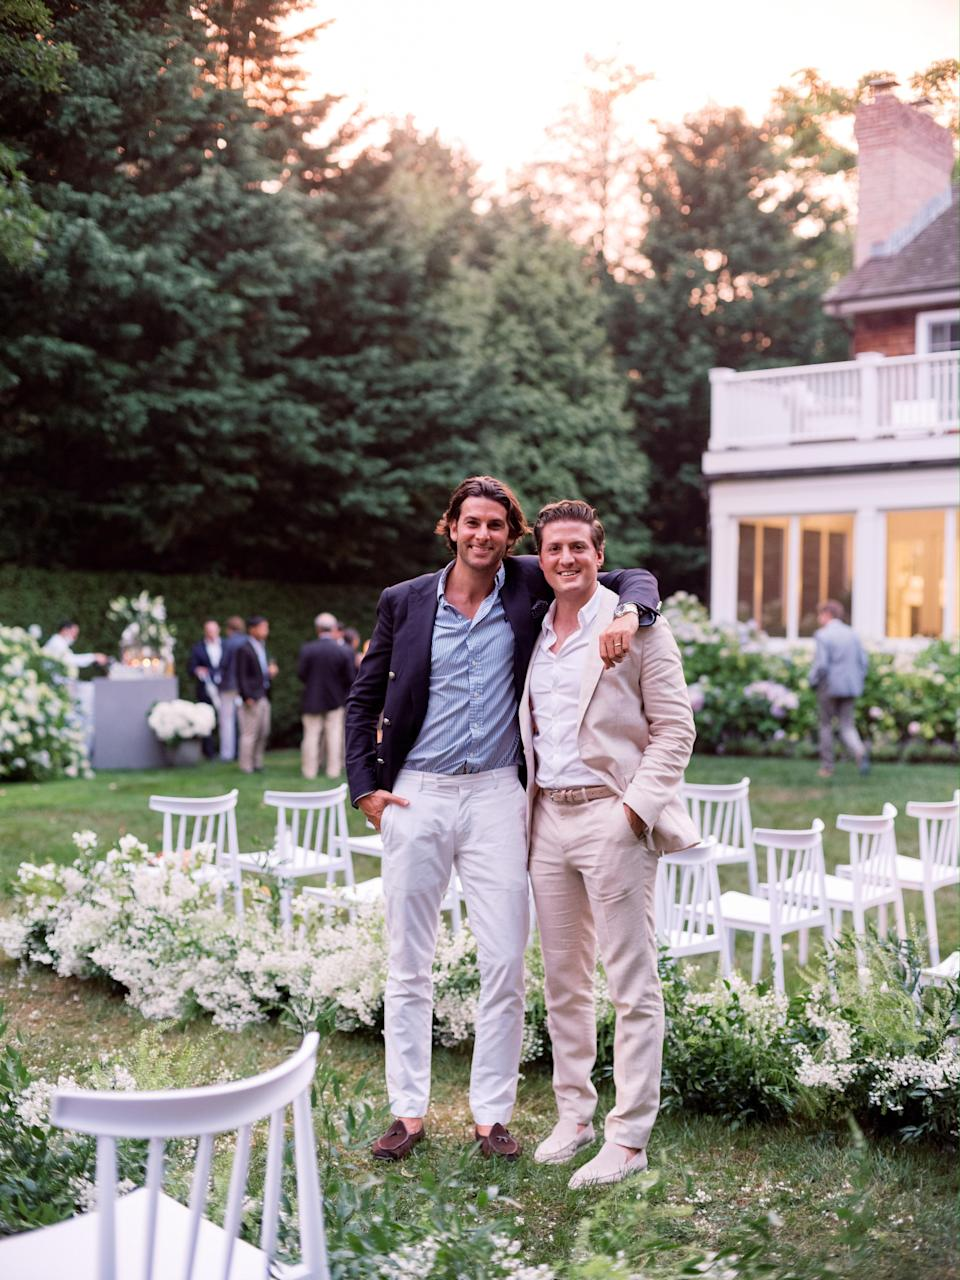 Ben and his older brother, Scott, just before the reception started.